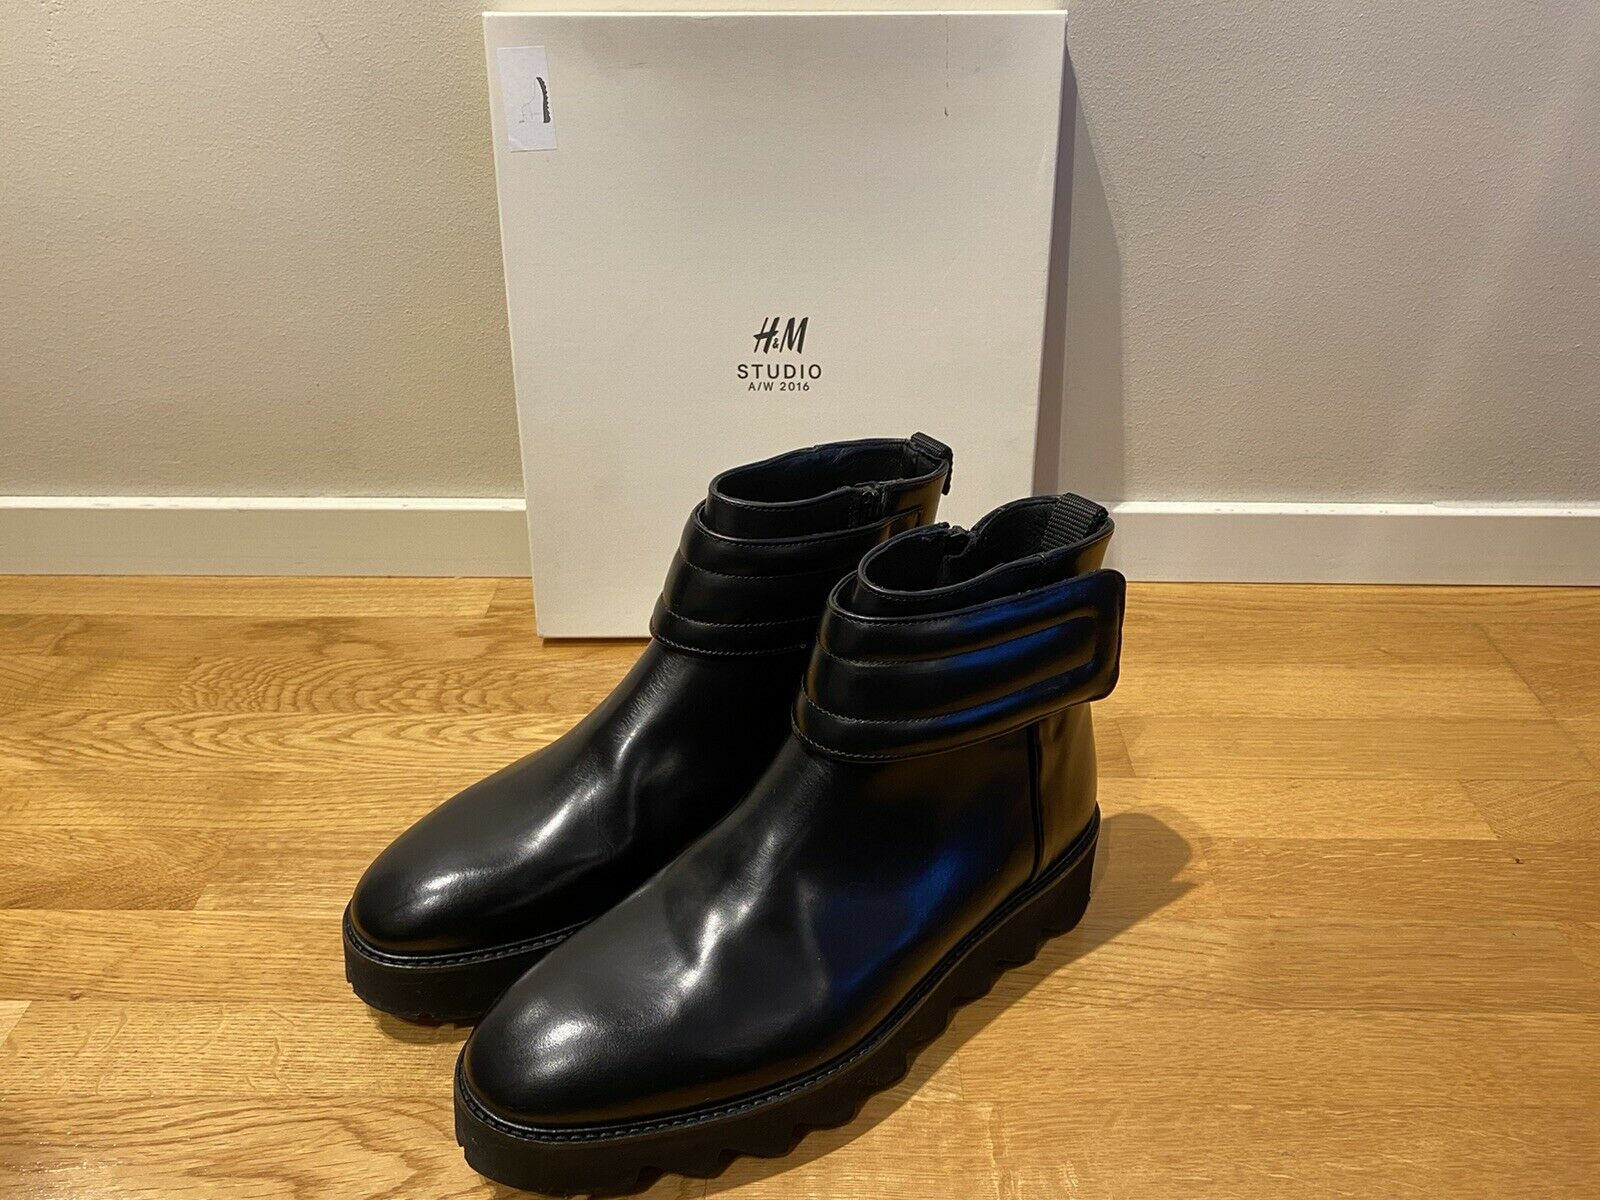 H&M Fall-Winter 2016 Studio Collection Winter Thick-Soled Genuine Leather Boots